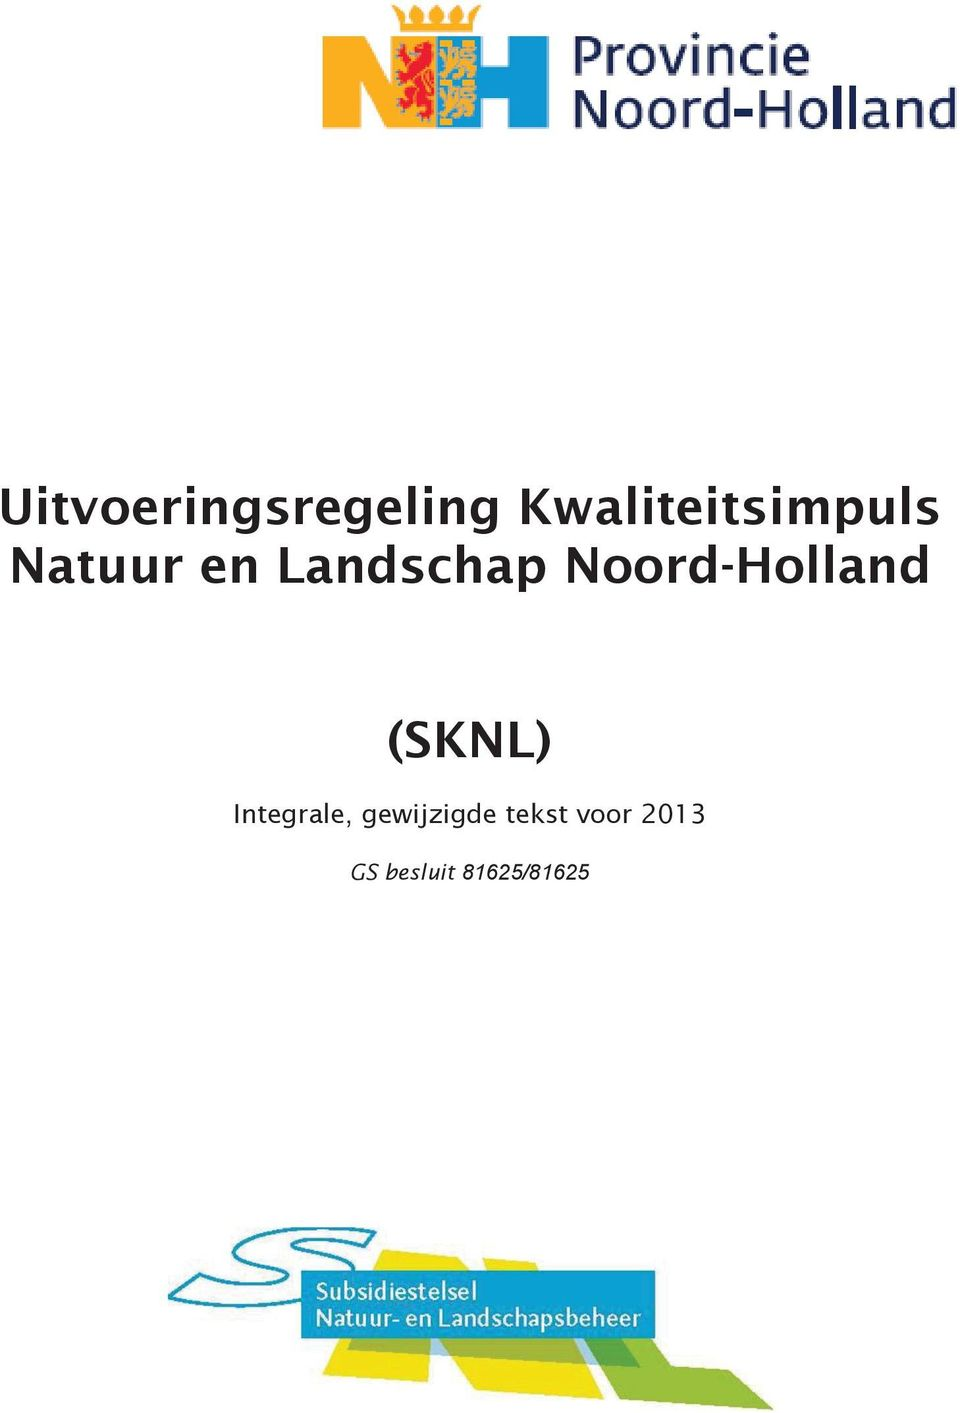 Landschap Noord-Holland (SKNL)